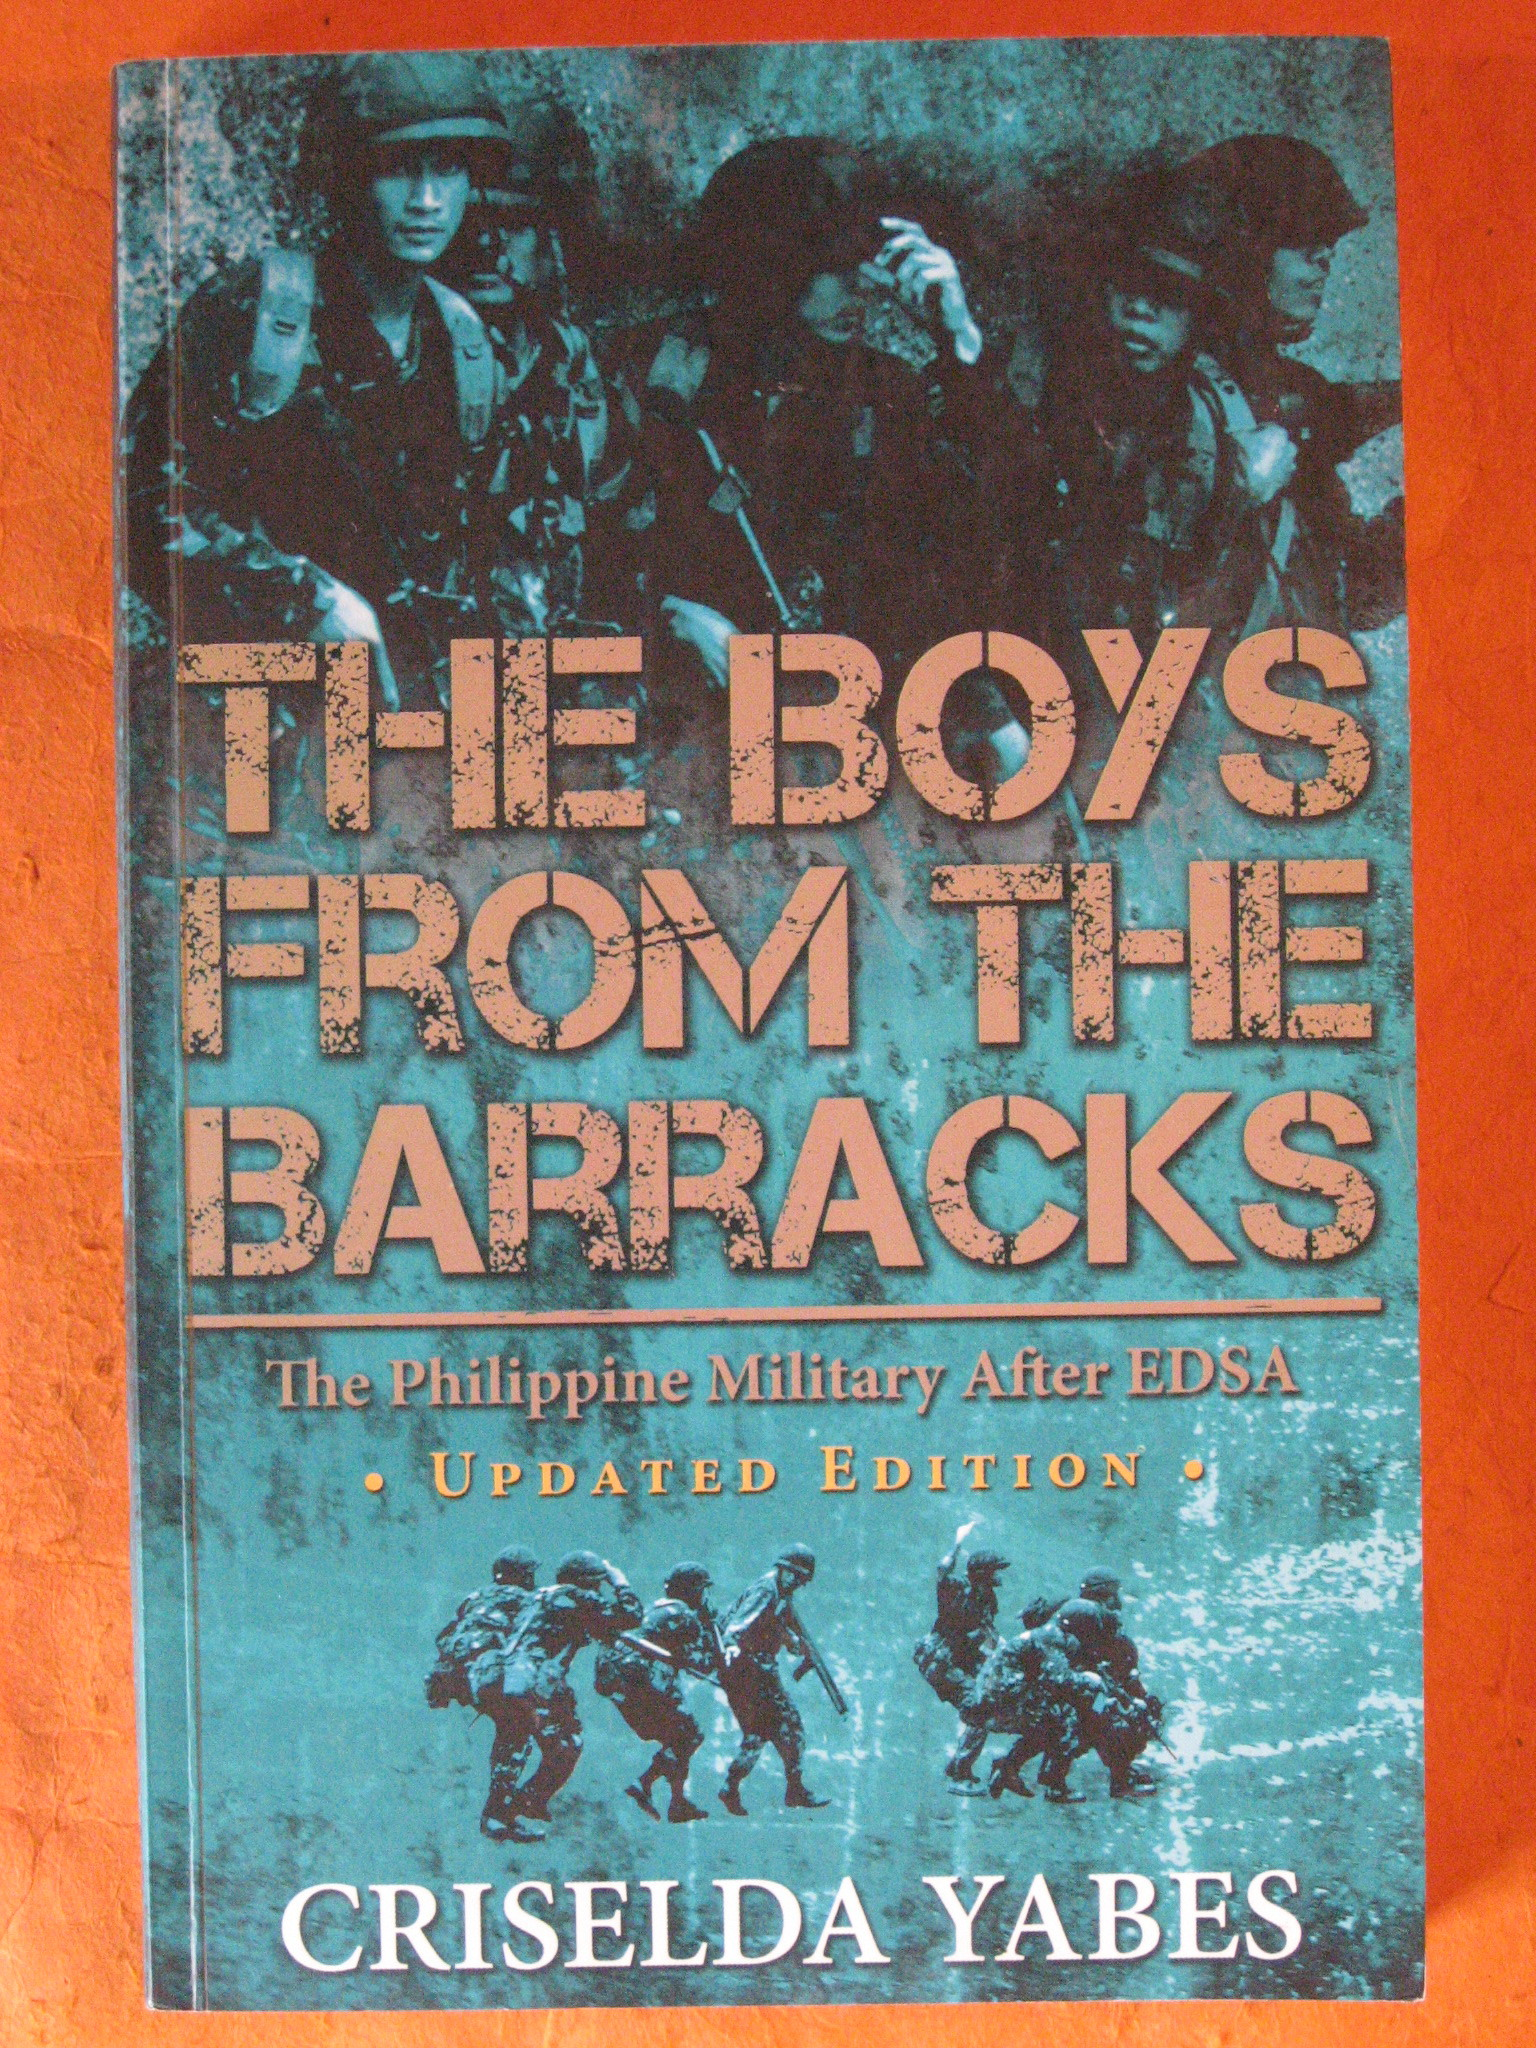 The boys from the barracks: The Philippine military after EDSA  (updated Ed.), Yabes, Criselda